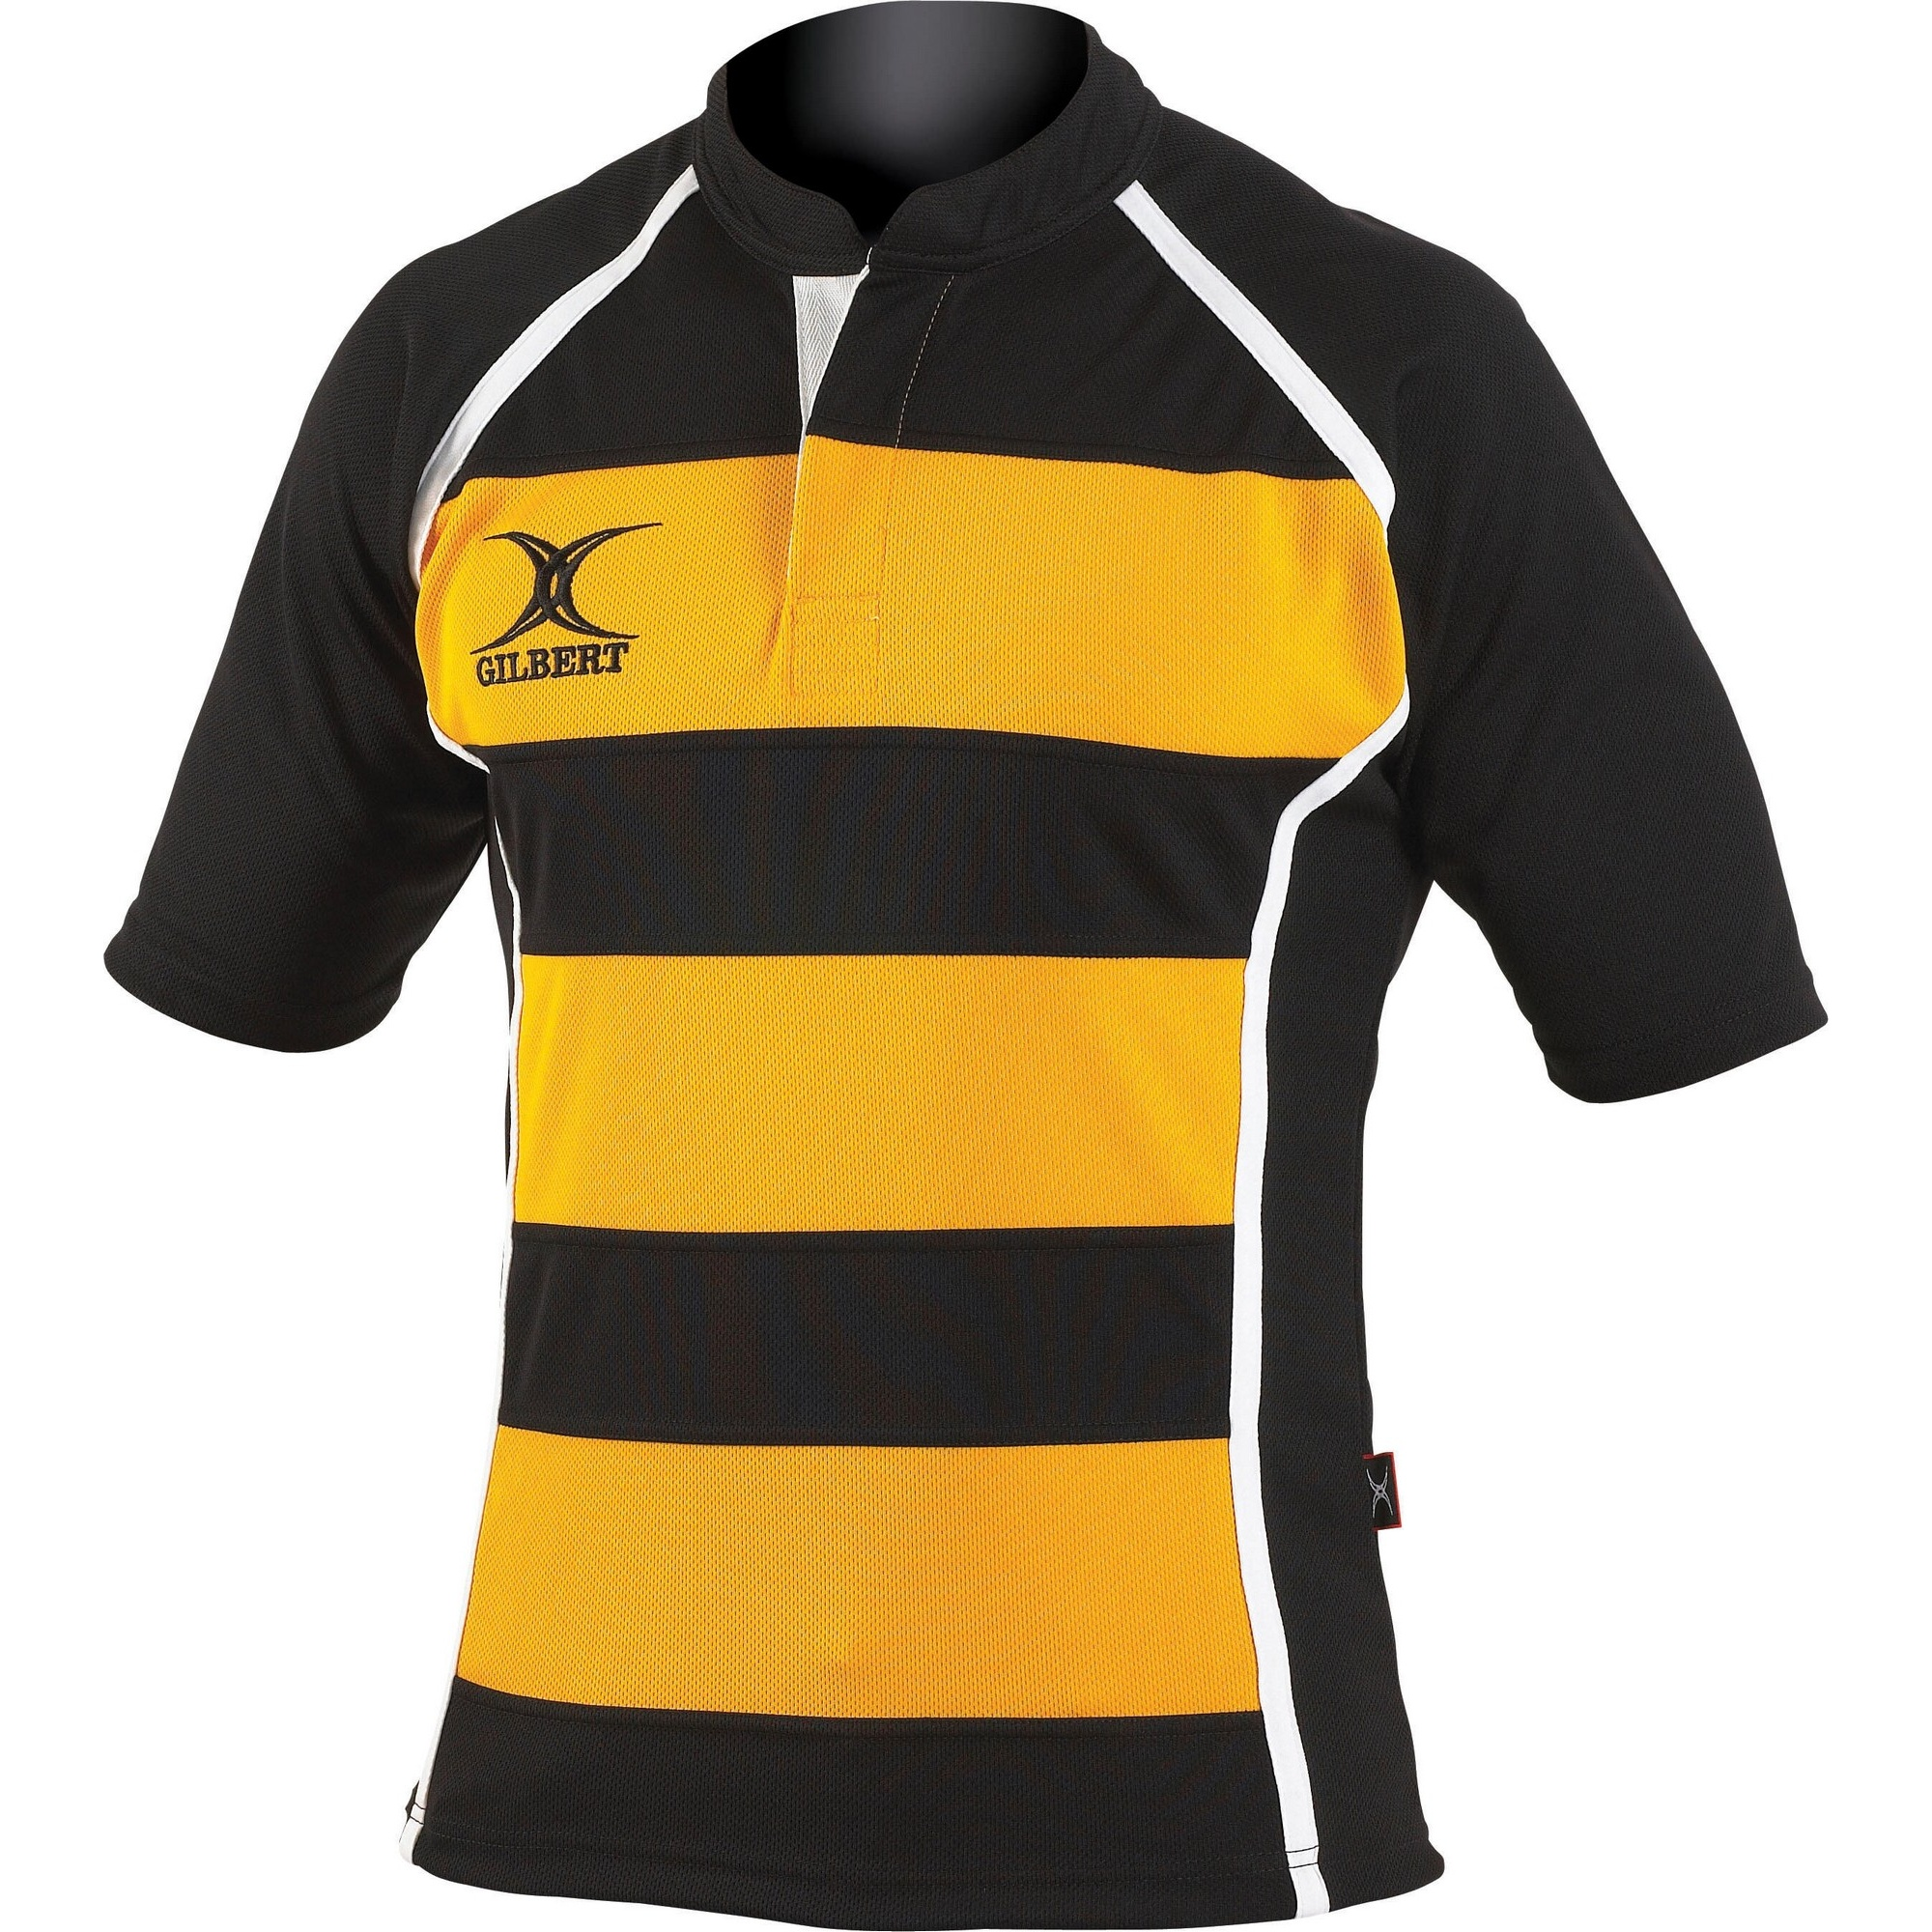 Gilbert Rugby Childrens/Kids Xact Match Short Sleeved Rugby Shirt (11-12 Years) (Black/ Amber Hoops)